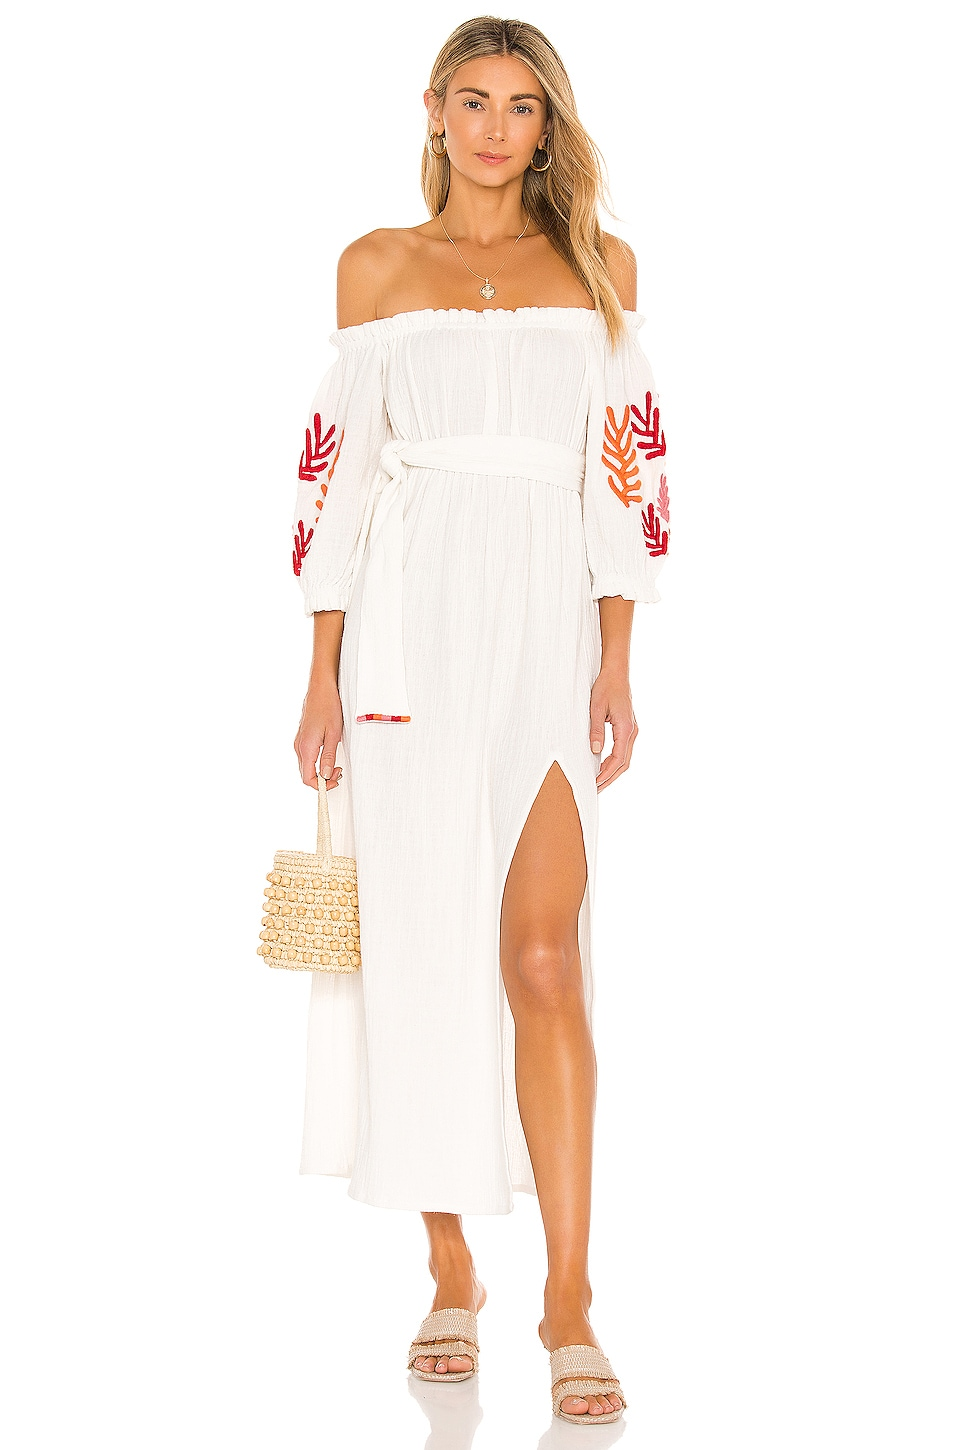 Sundress Poly Dress in Tulum White & Mix Red Embroideries